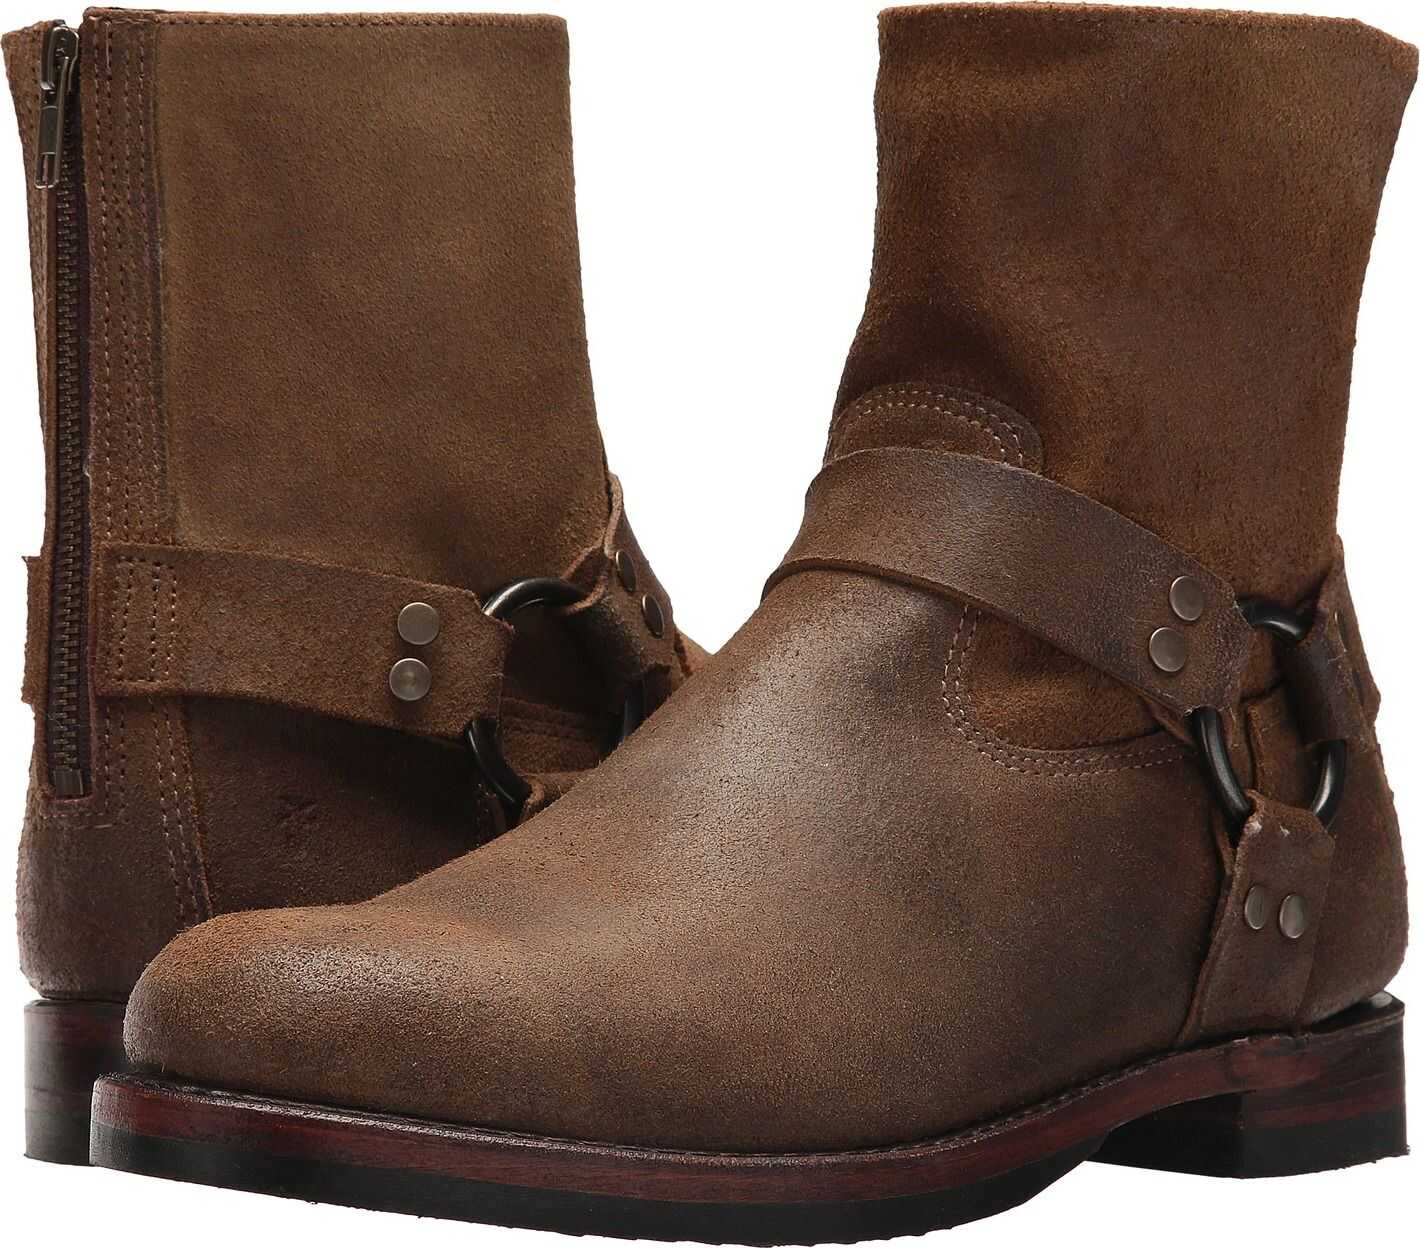 Frye John Addison Harness Back Zip Chestnut Waxed Suede